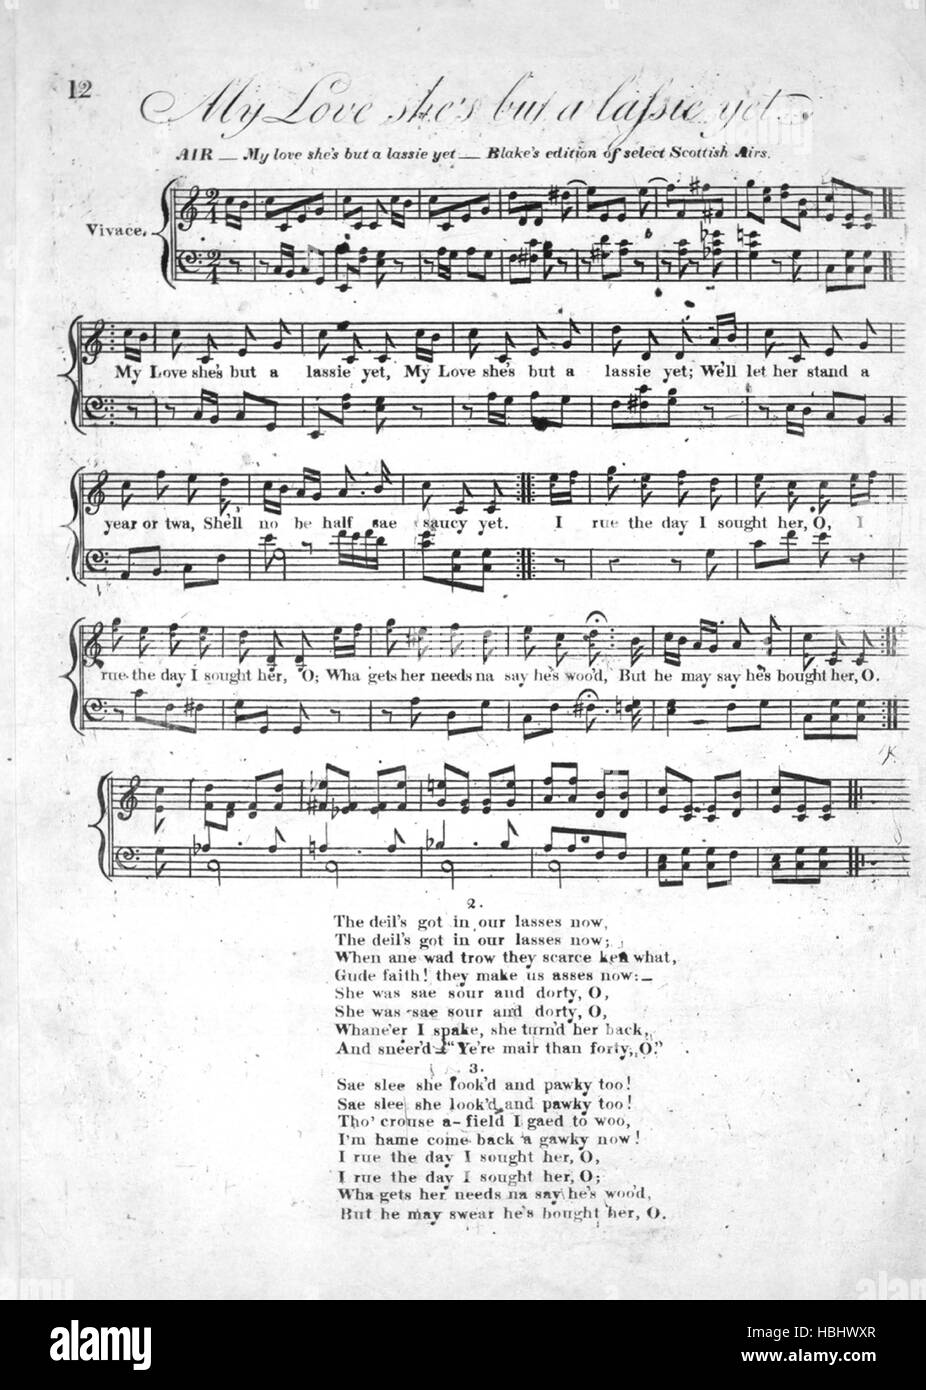 Sheet music cover image of the song 'How Lang and Dreary is the Night Air  Cauld Kail in Aberdeen Blake's - Stock Image